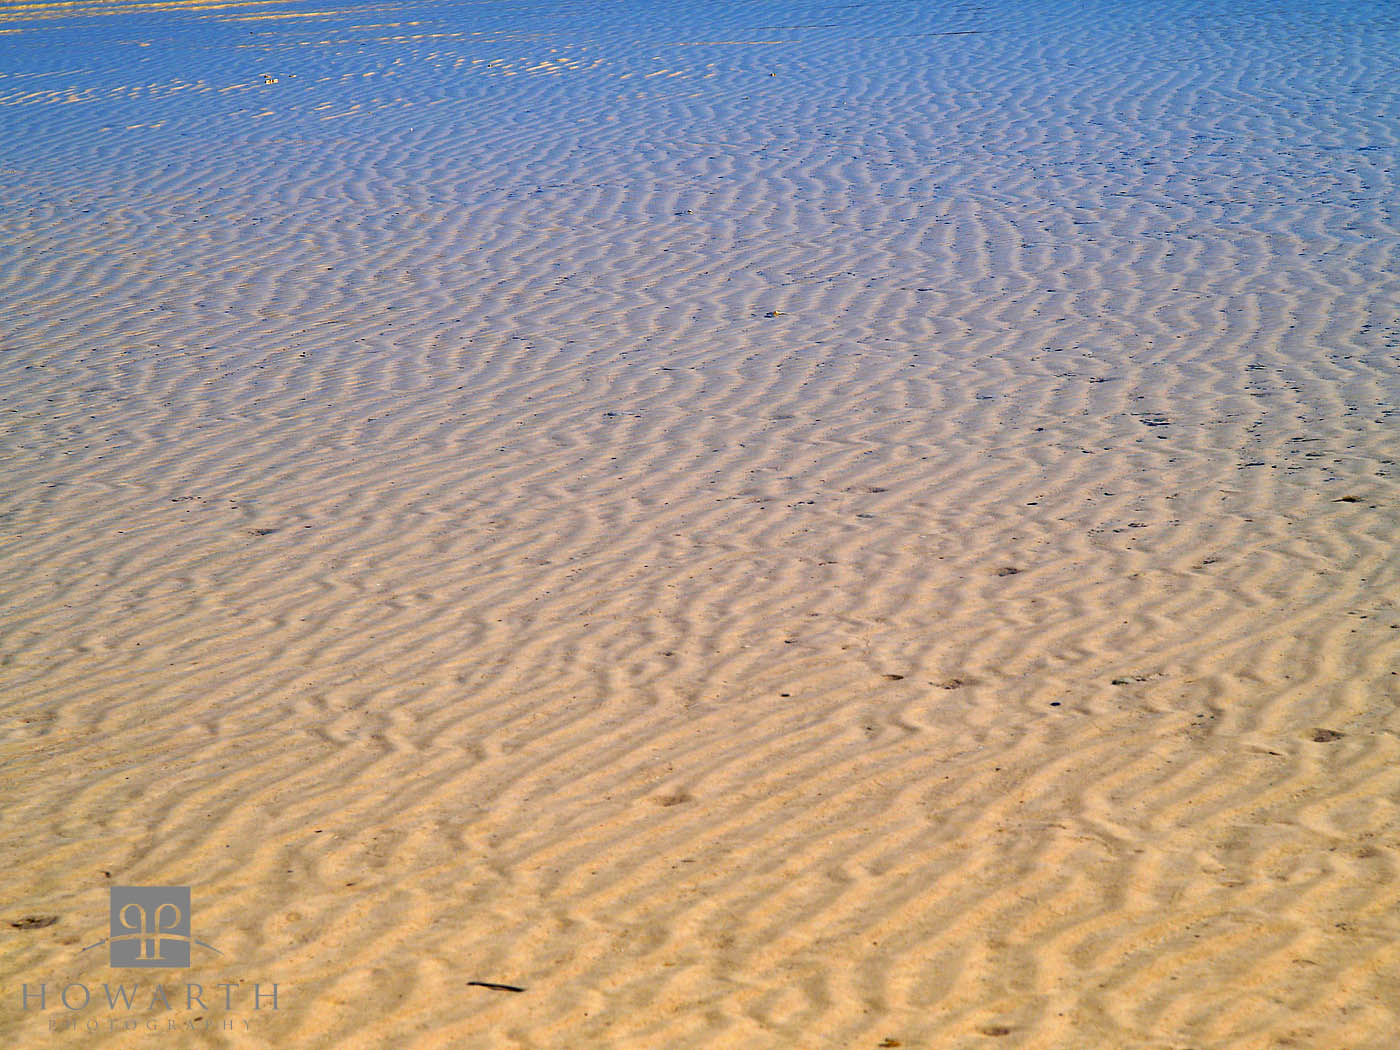 ripples, sand, beach, water, low tide, photo